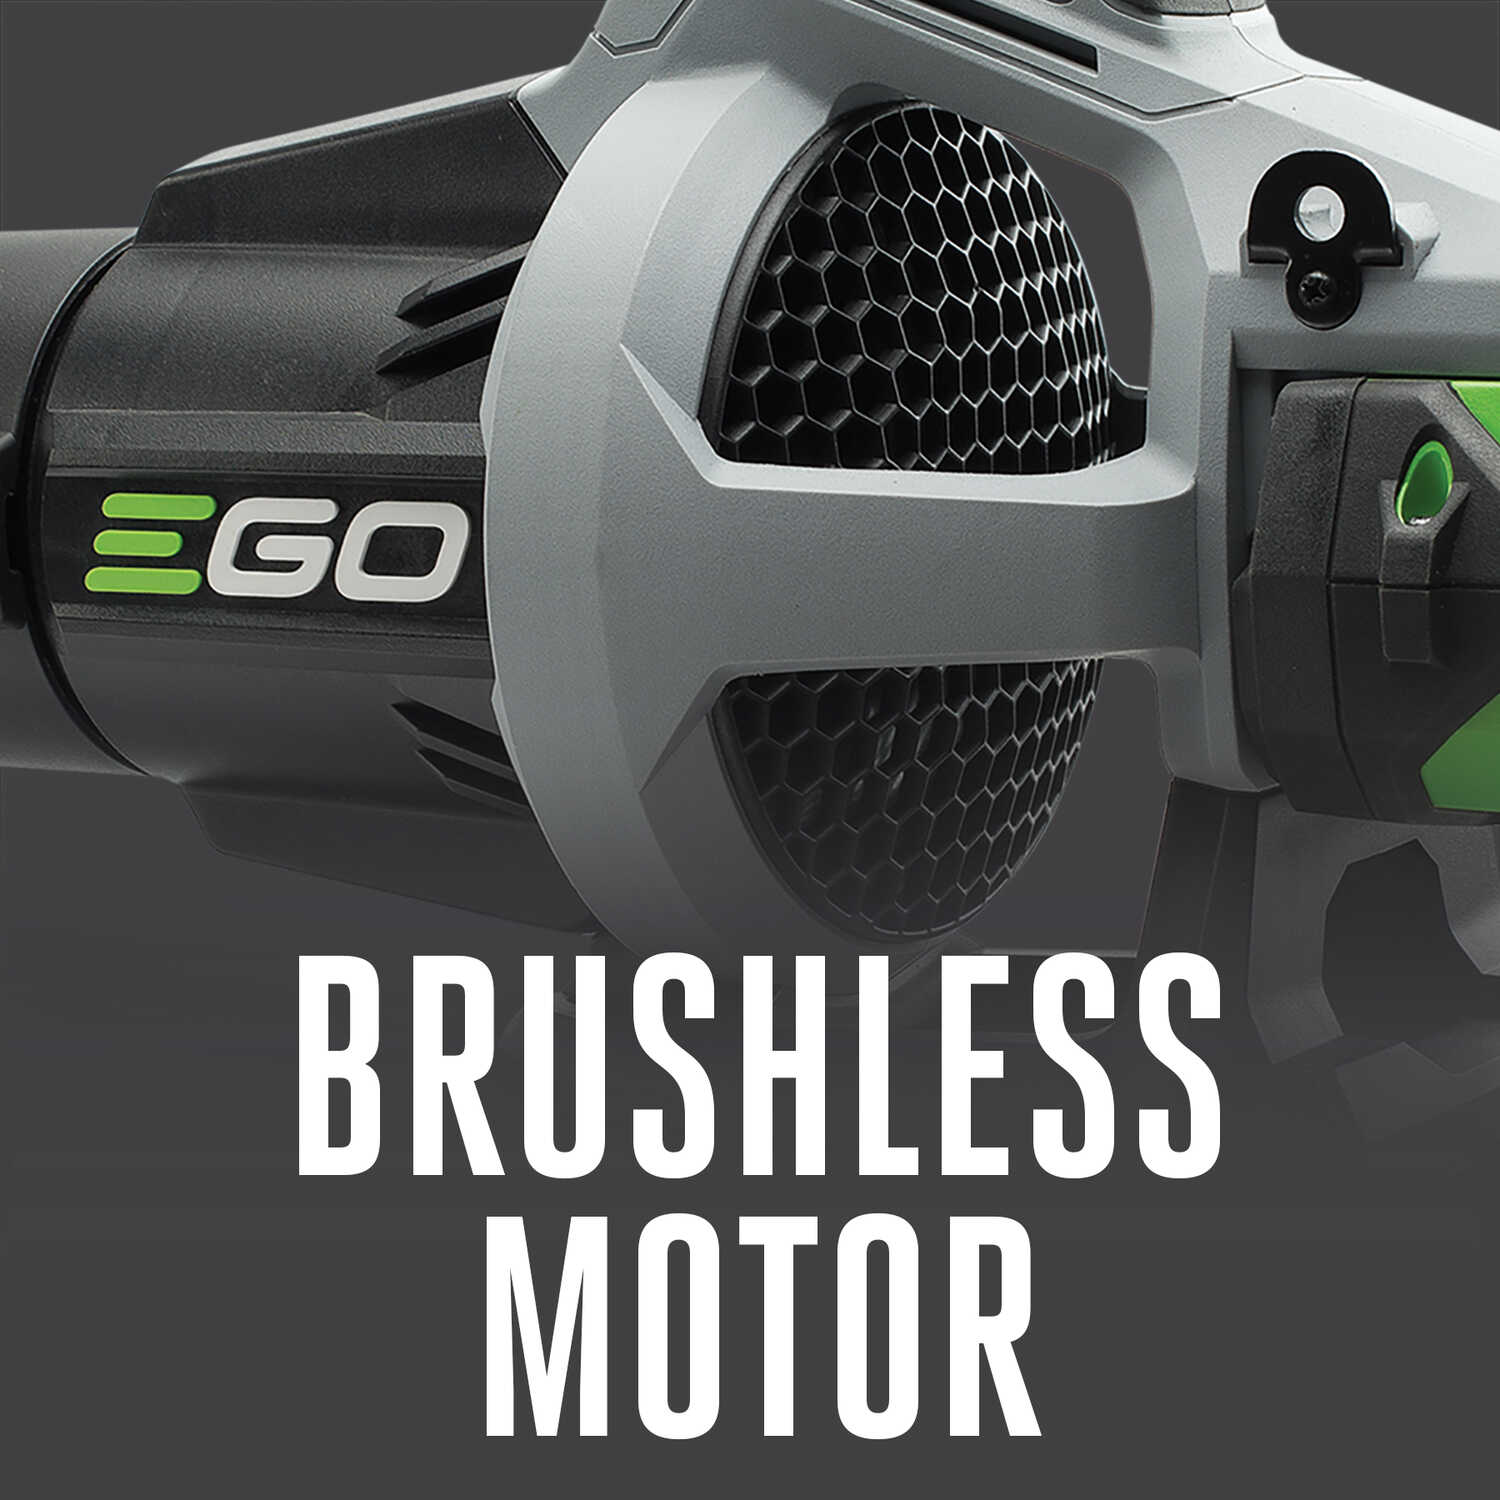 EGO  Power Plus  Battery  Handheld  Leaf Blower Bare Tool